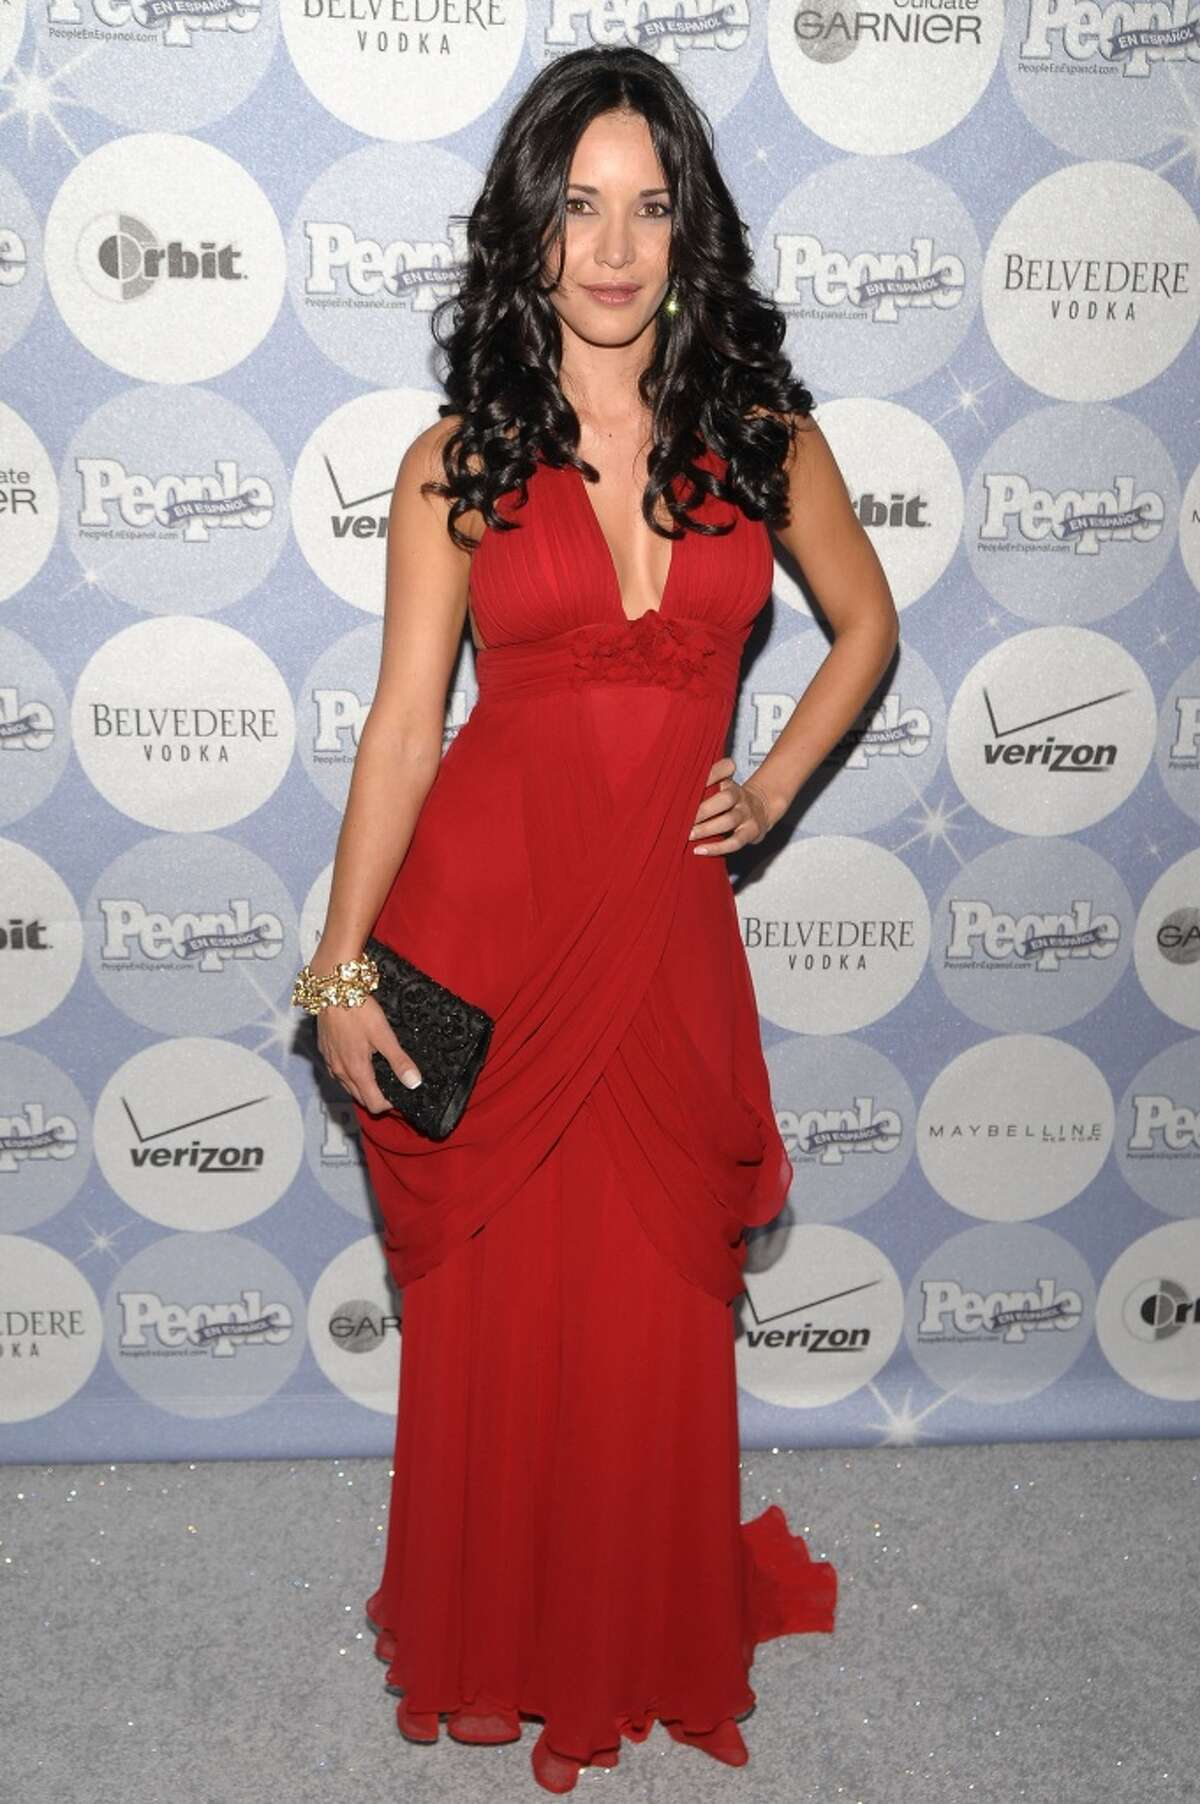 NEW YORK - MAY 20: Adriana Campos attends the People en Espanol Los 50 Mas Bellos party at Gustavino's on May 20, 2010 in New York City. (Photo by Dimitrios Kambouris/WireImage for People en Espanol)